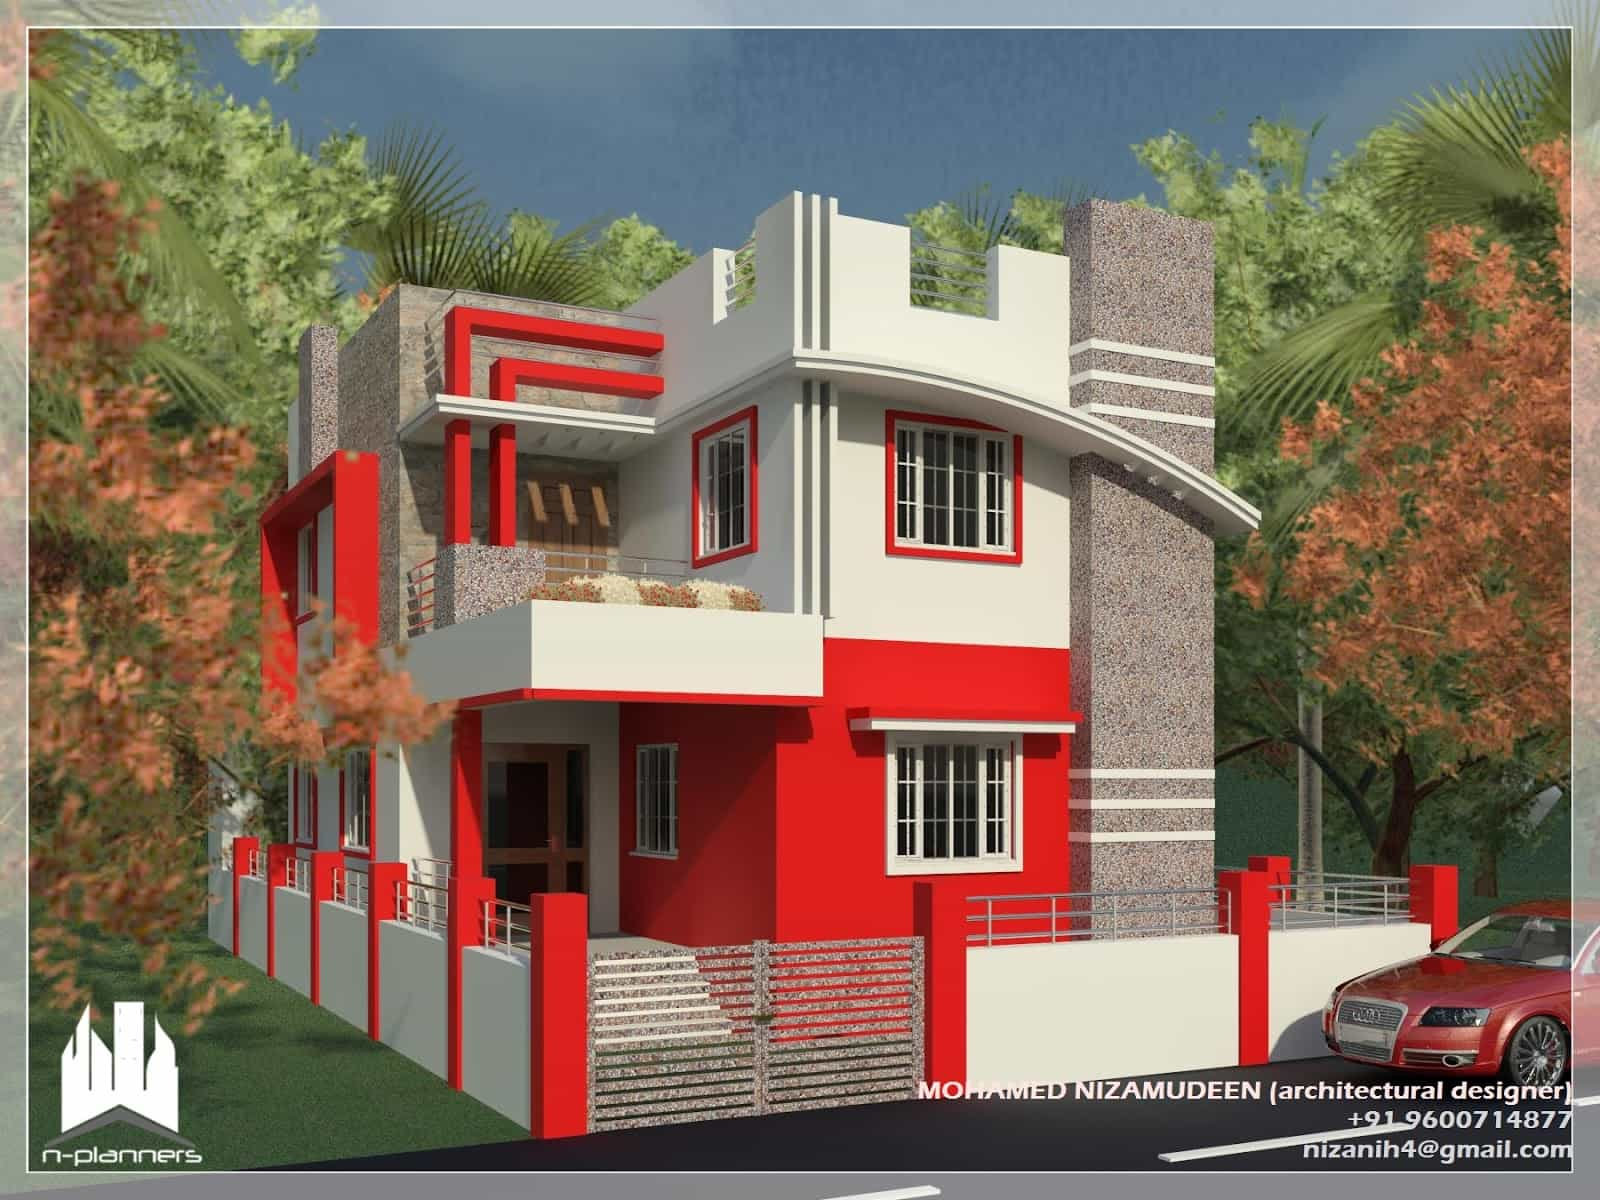 house design contemporary at 1375 sq.ft